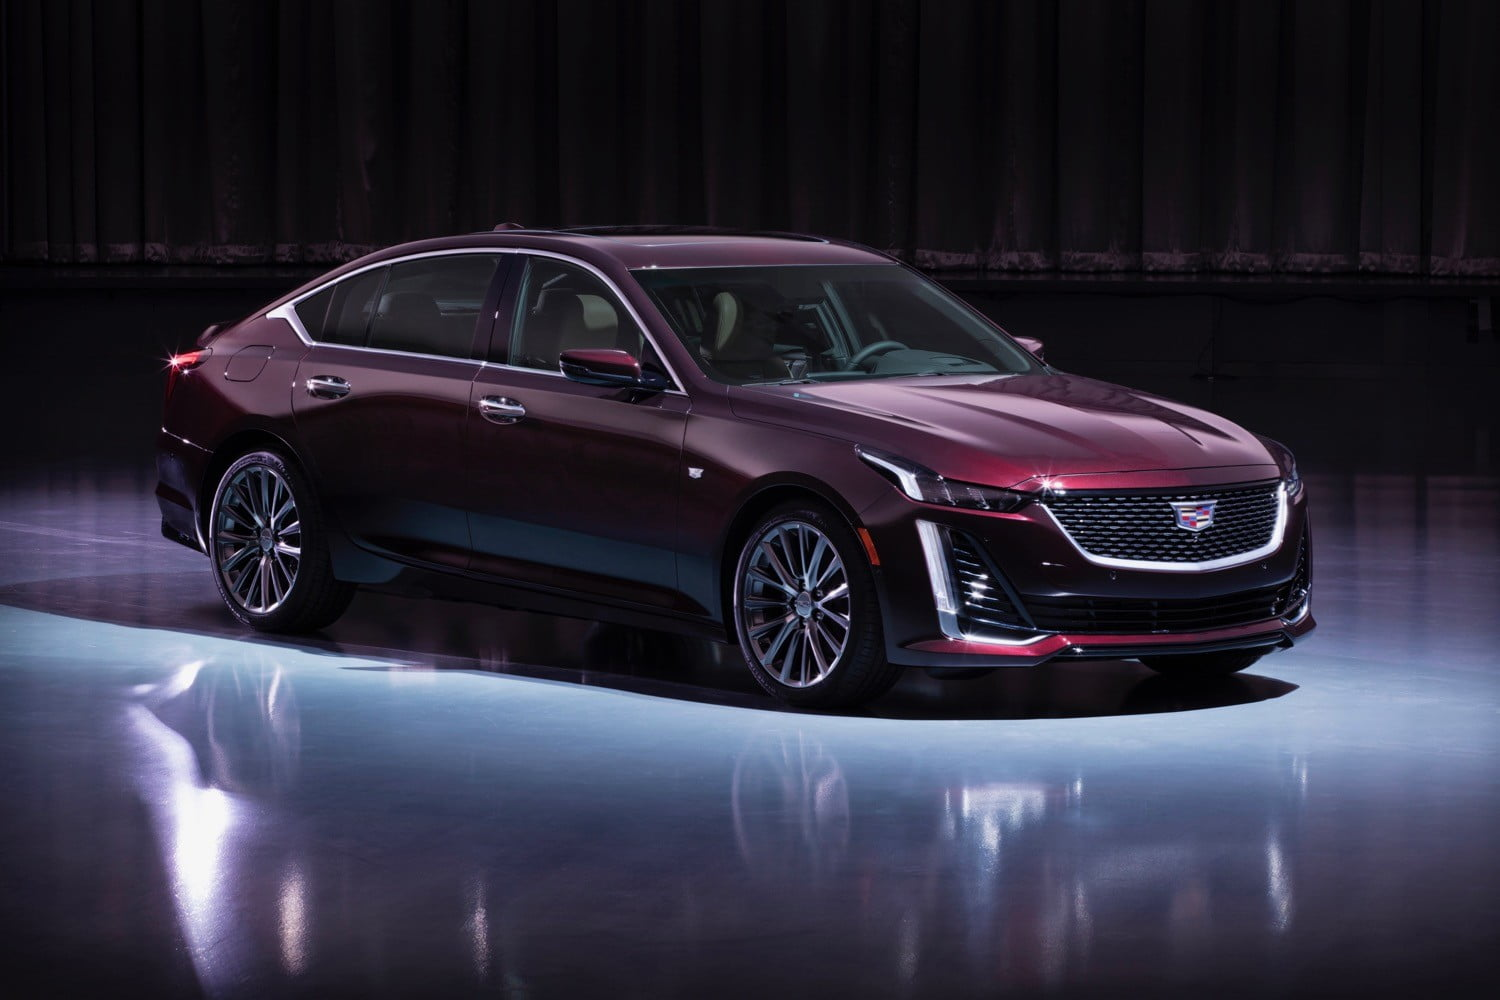 gm's new digital vehicle platform will support more in-car